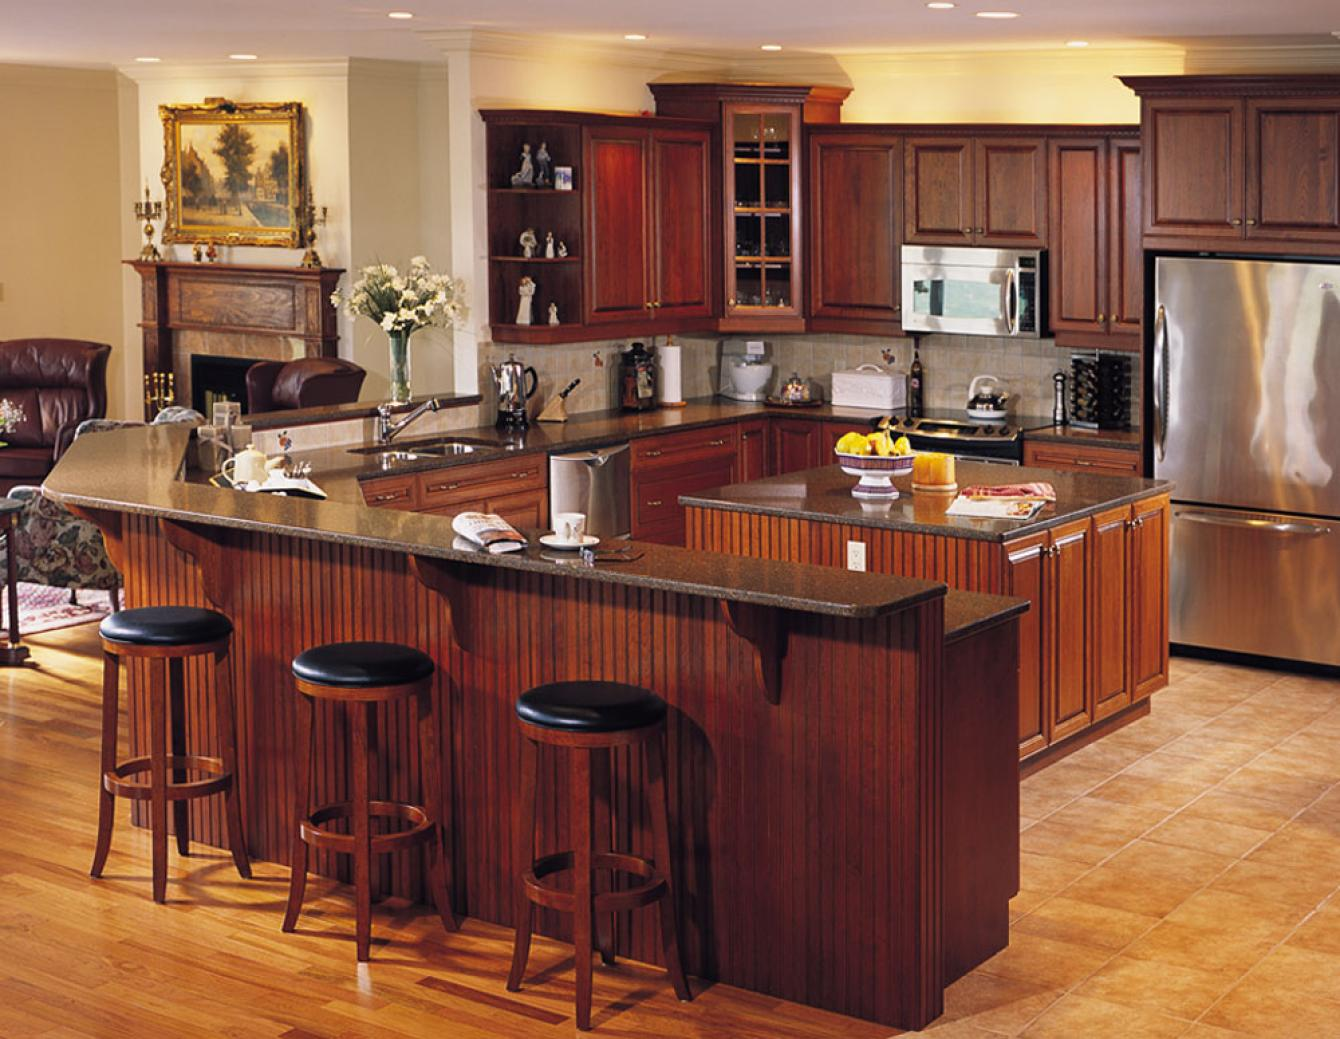 Traditional Kitchen Design Gallery traditional kitchen design gallery | dover woods